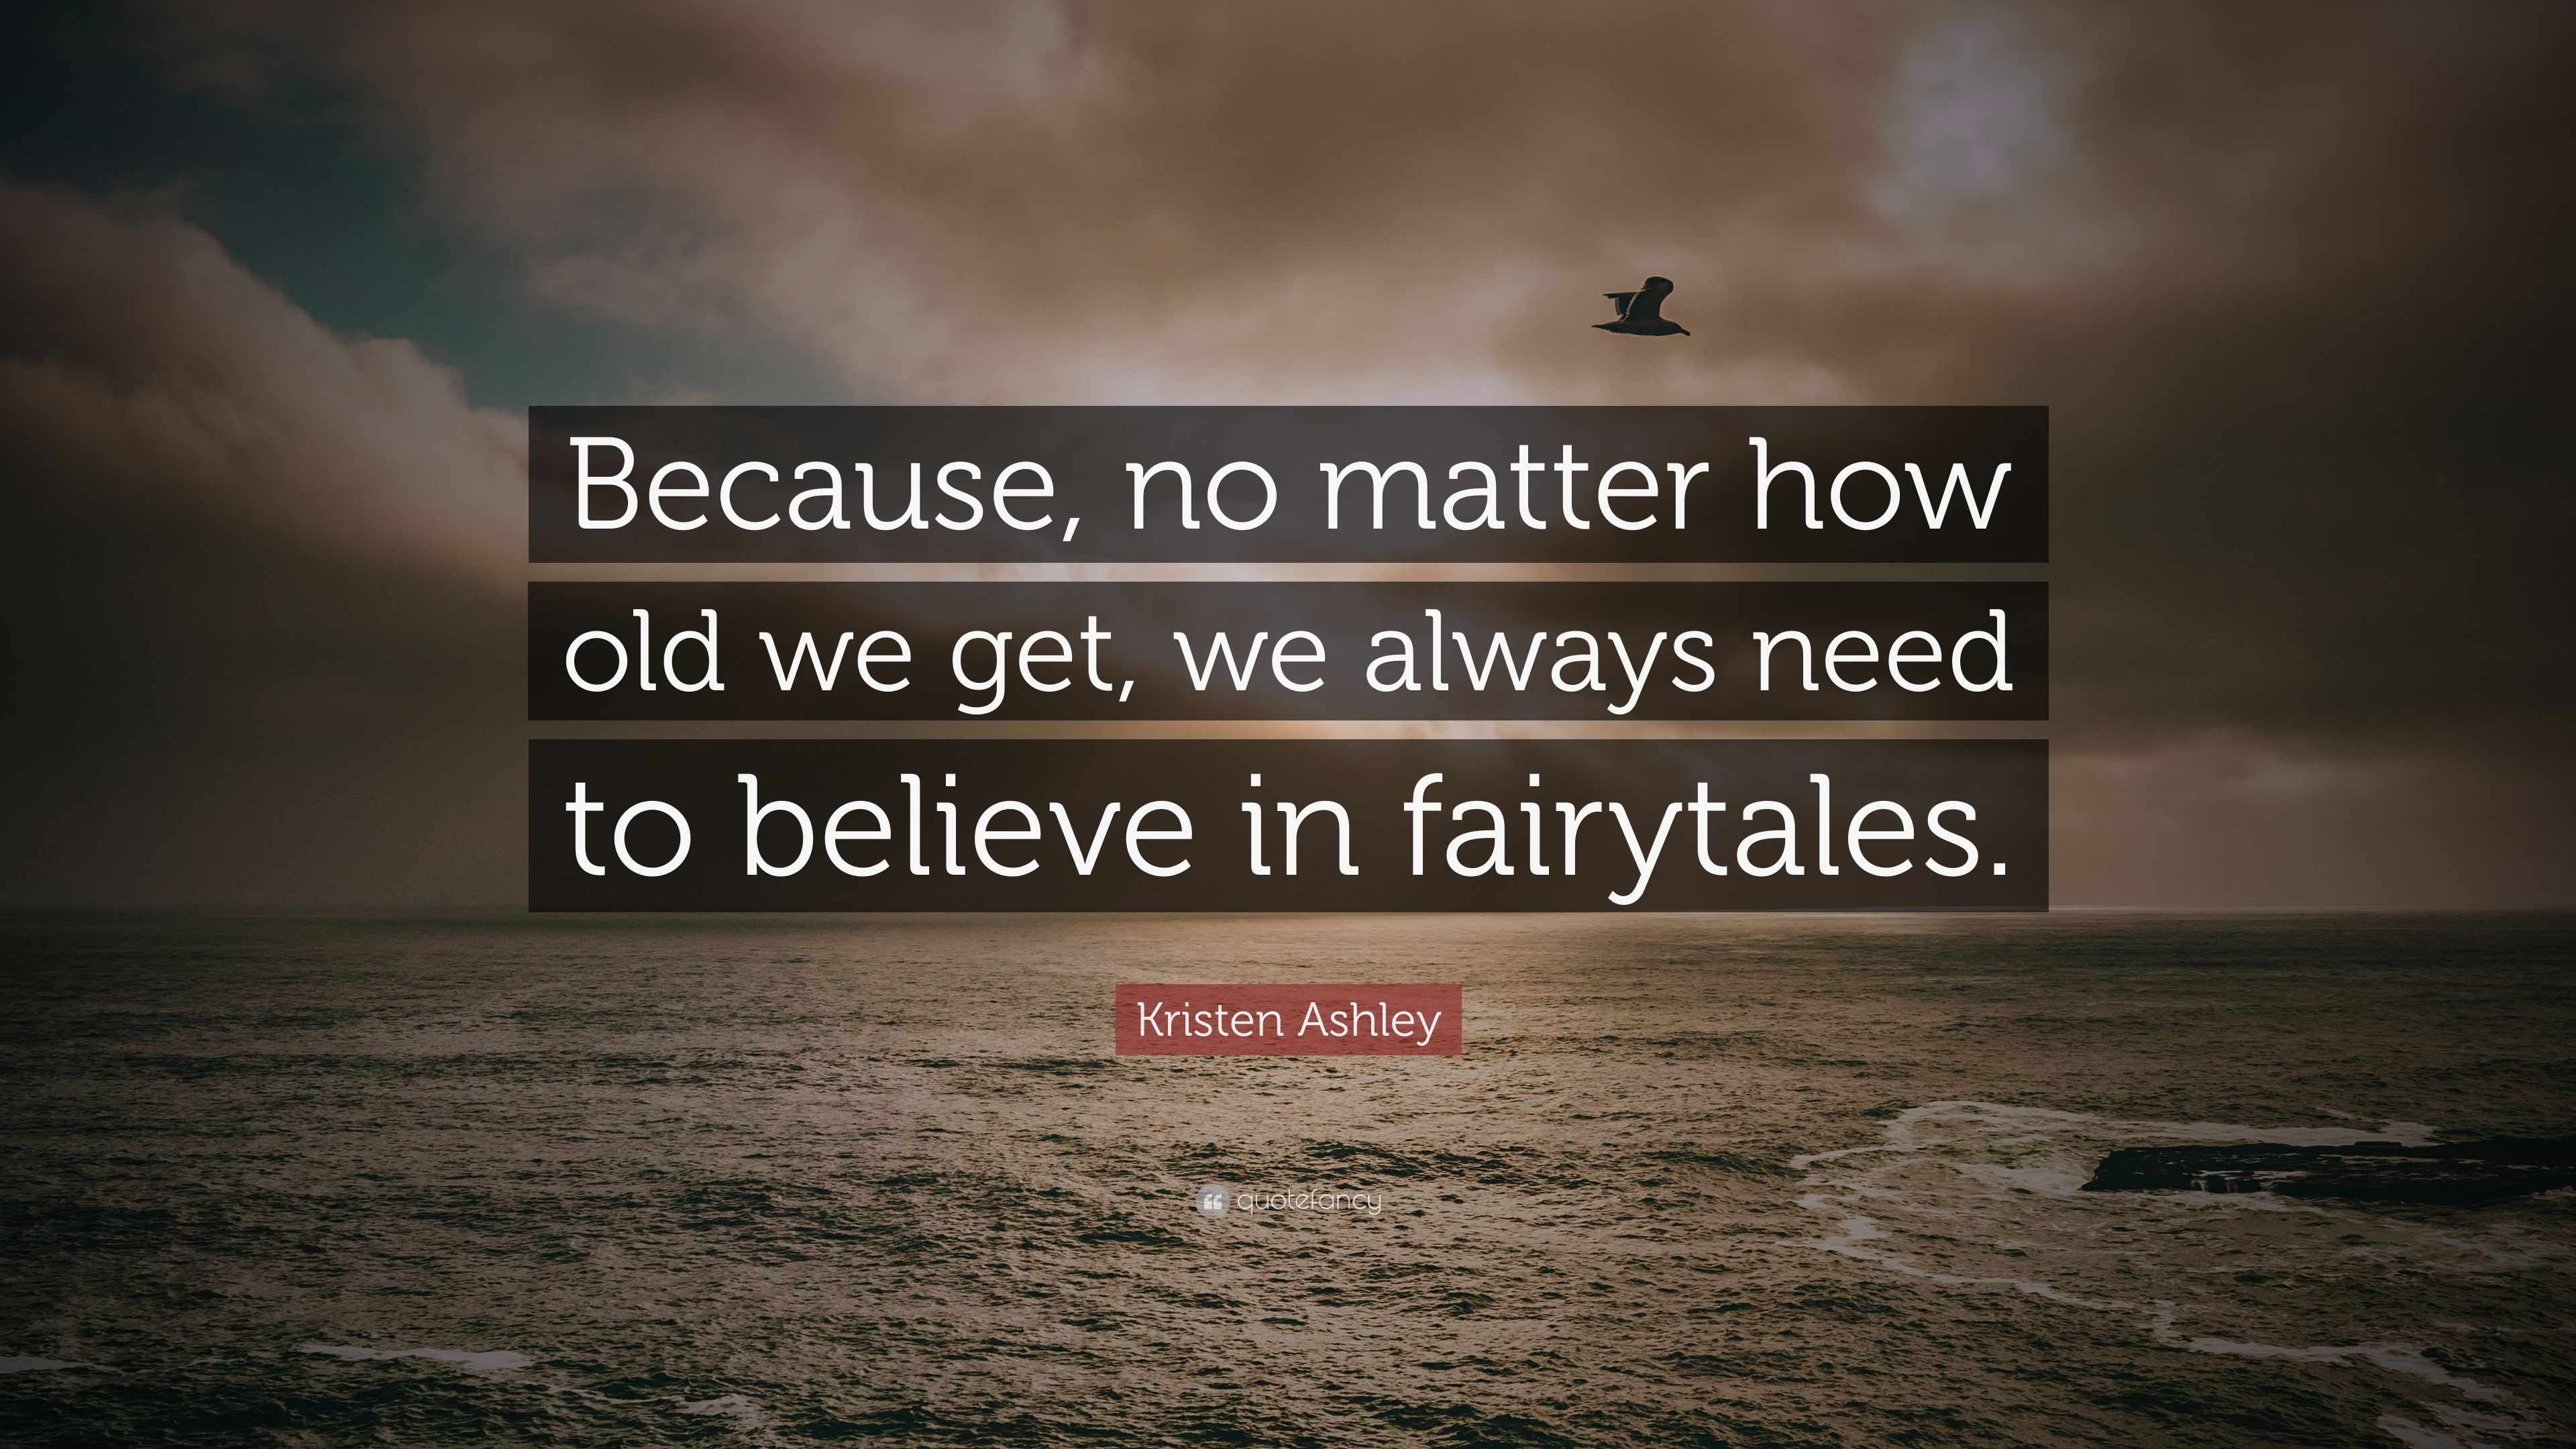 Kristen Ashley Quote Because No Matter How Old We Get We Always Need To Believe In Fairytales 7 Wallpapers Quotefancy